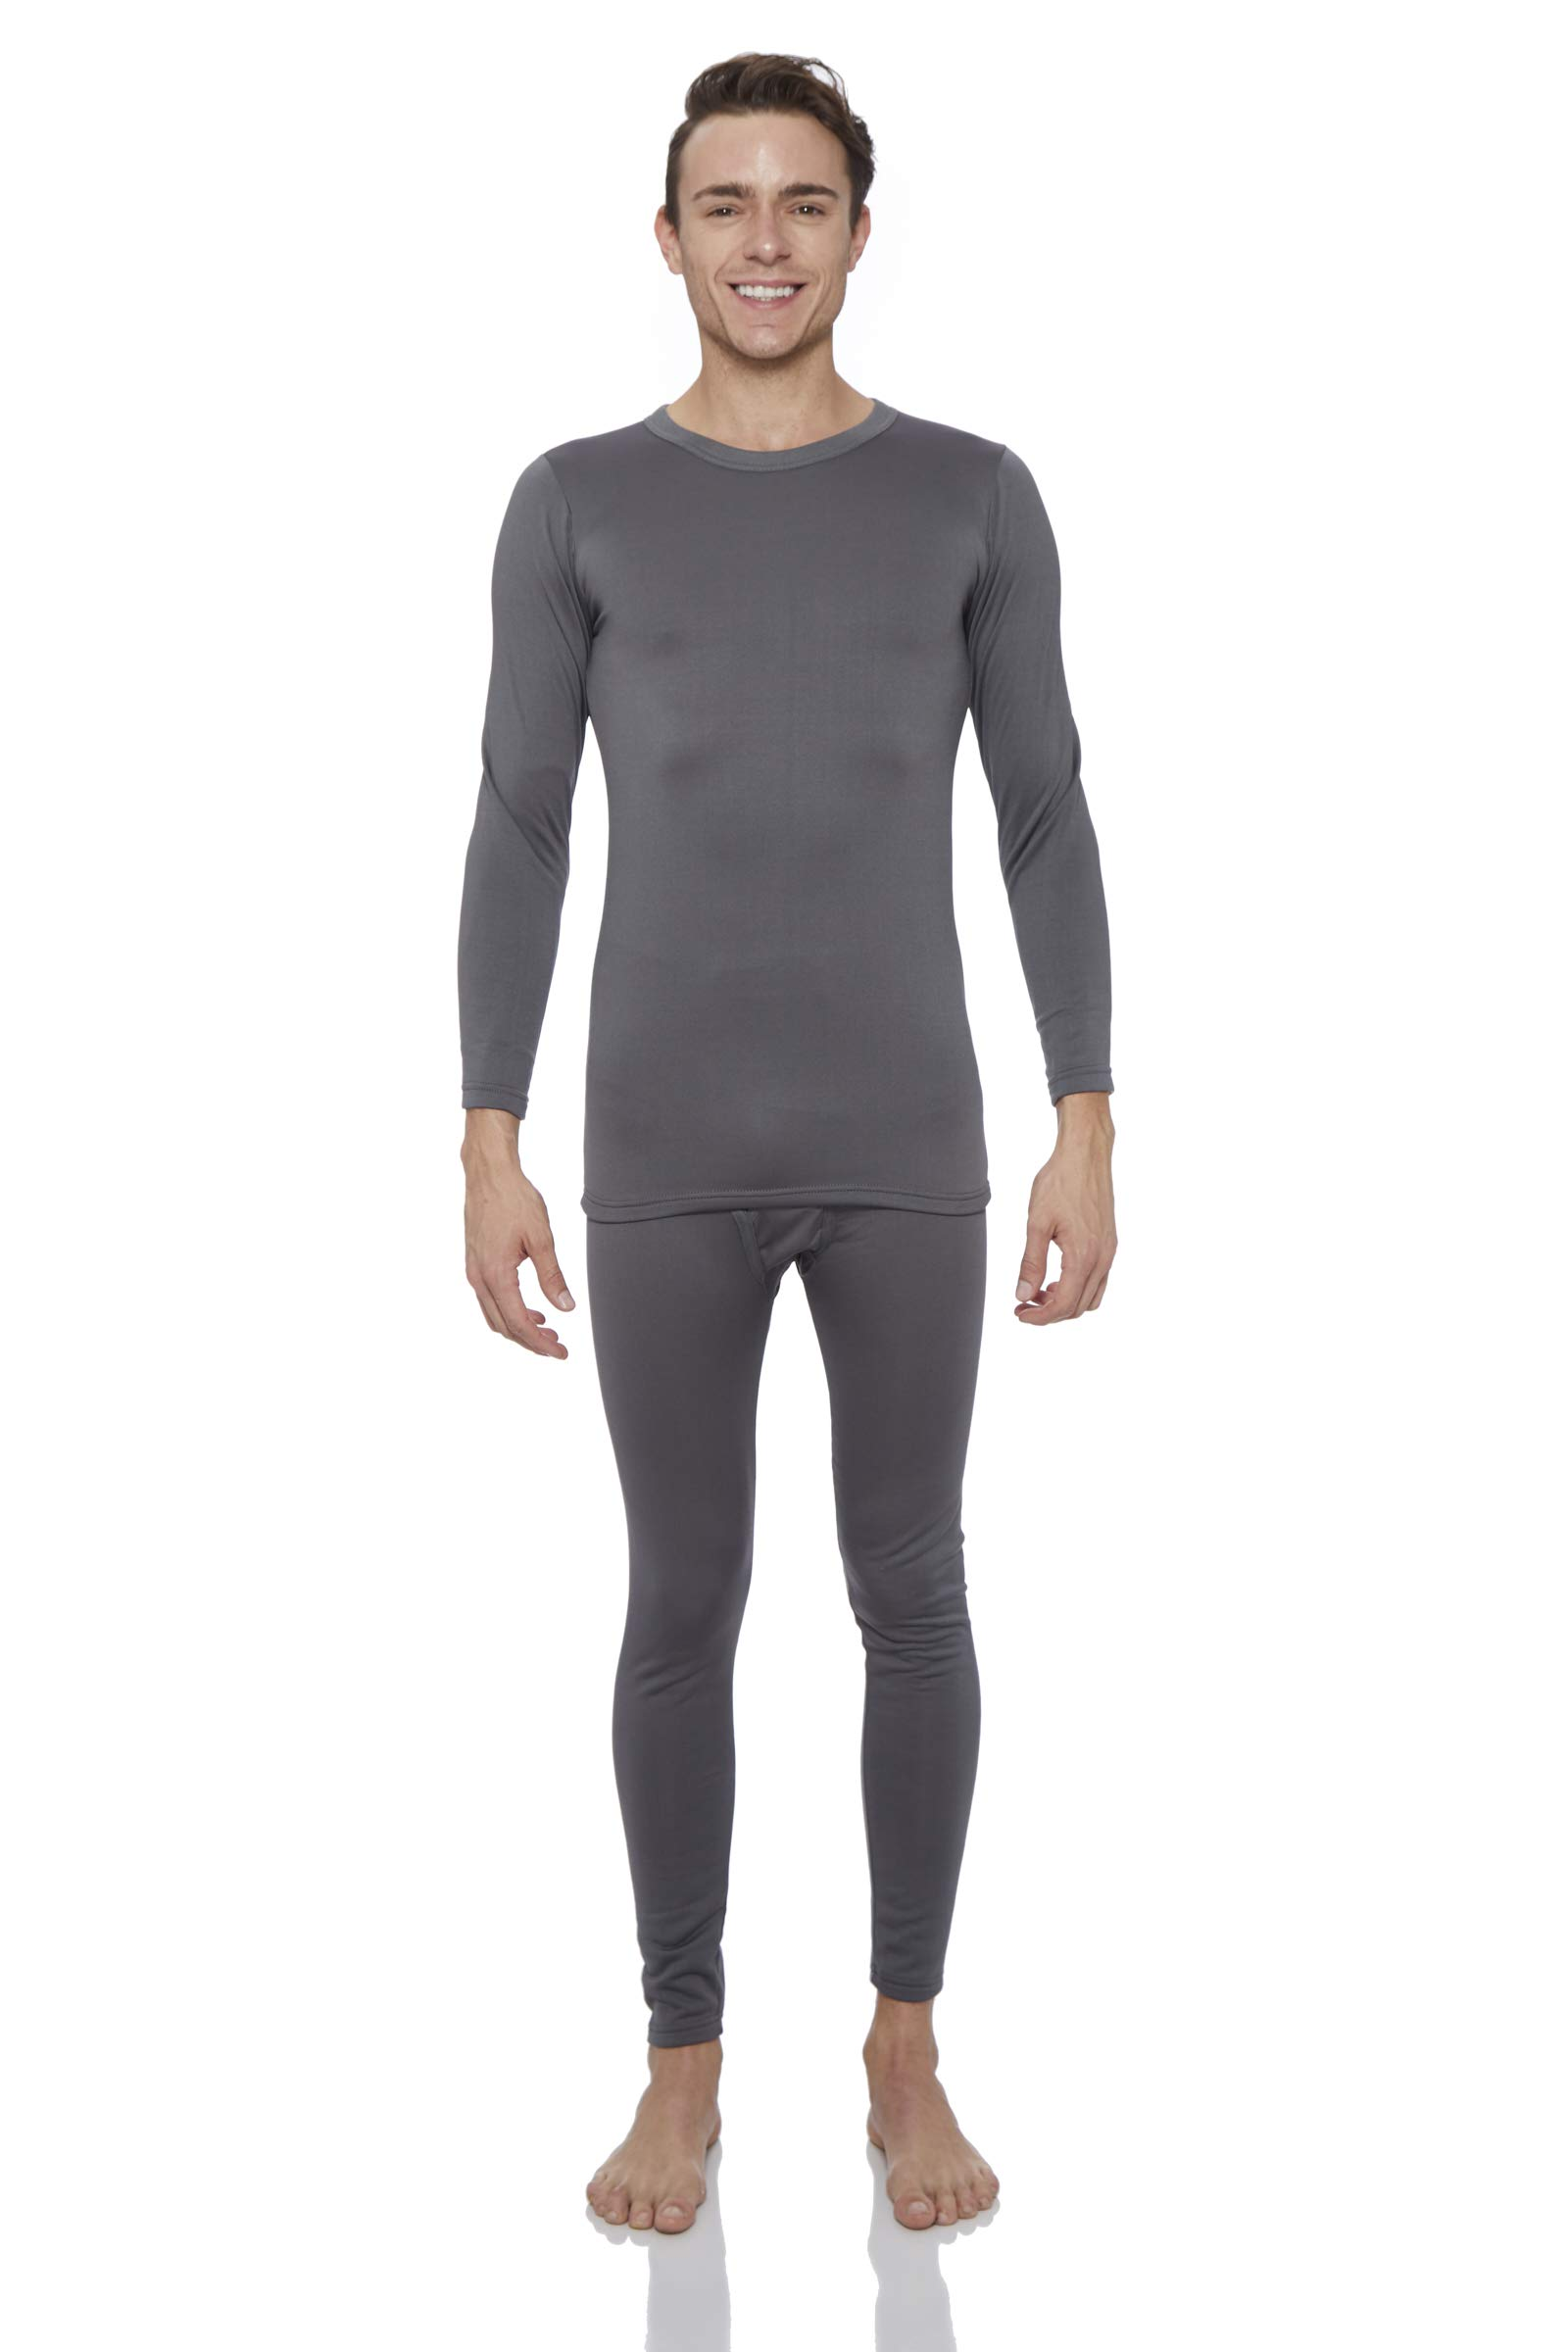 ROCKY Thermal Underwear for Men Fleece Lined Thermals Mens Base Layer Long John Set Grey